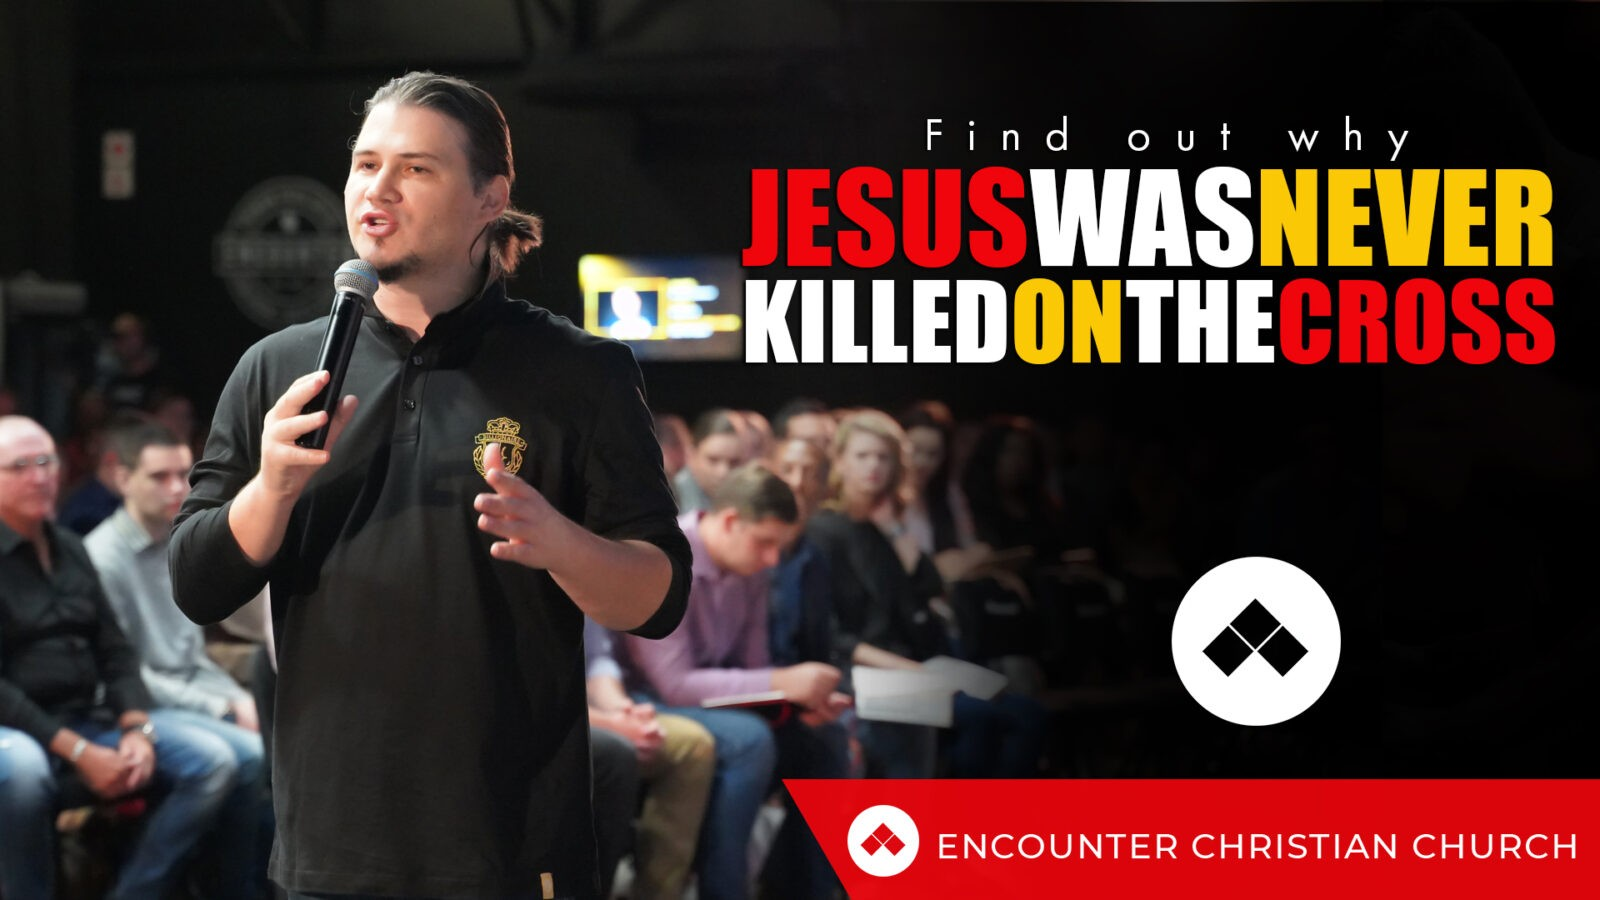 Find Out Why Jesus Was Never Killed On The Cross